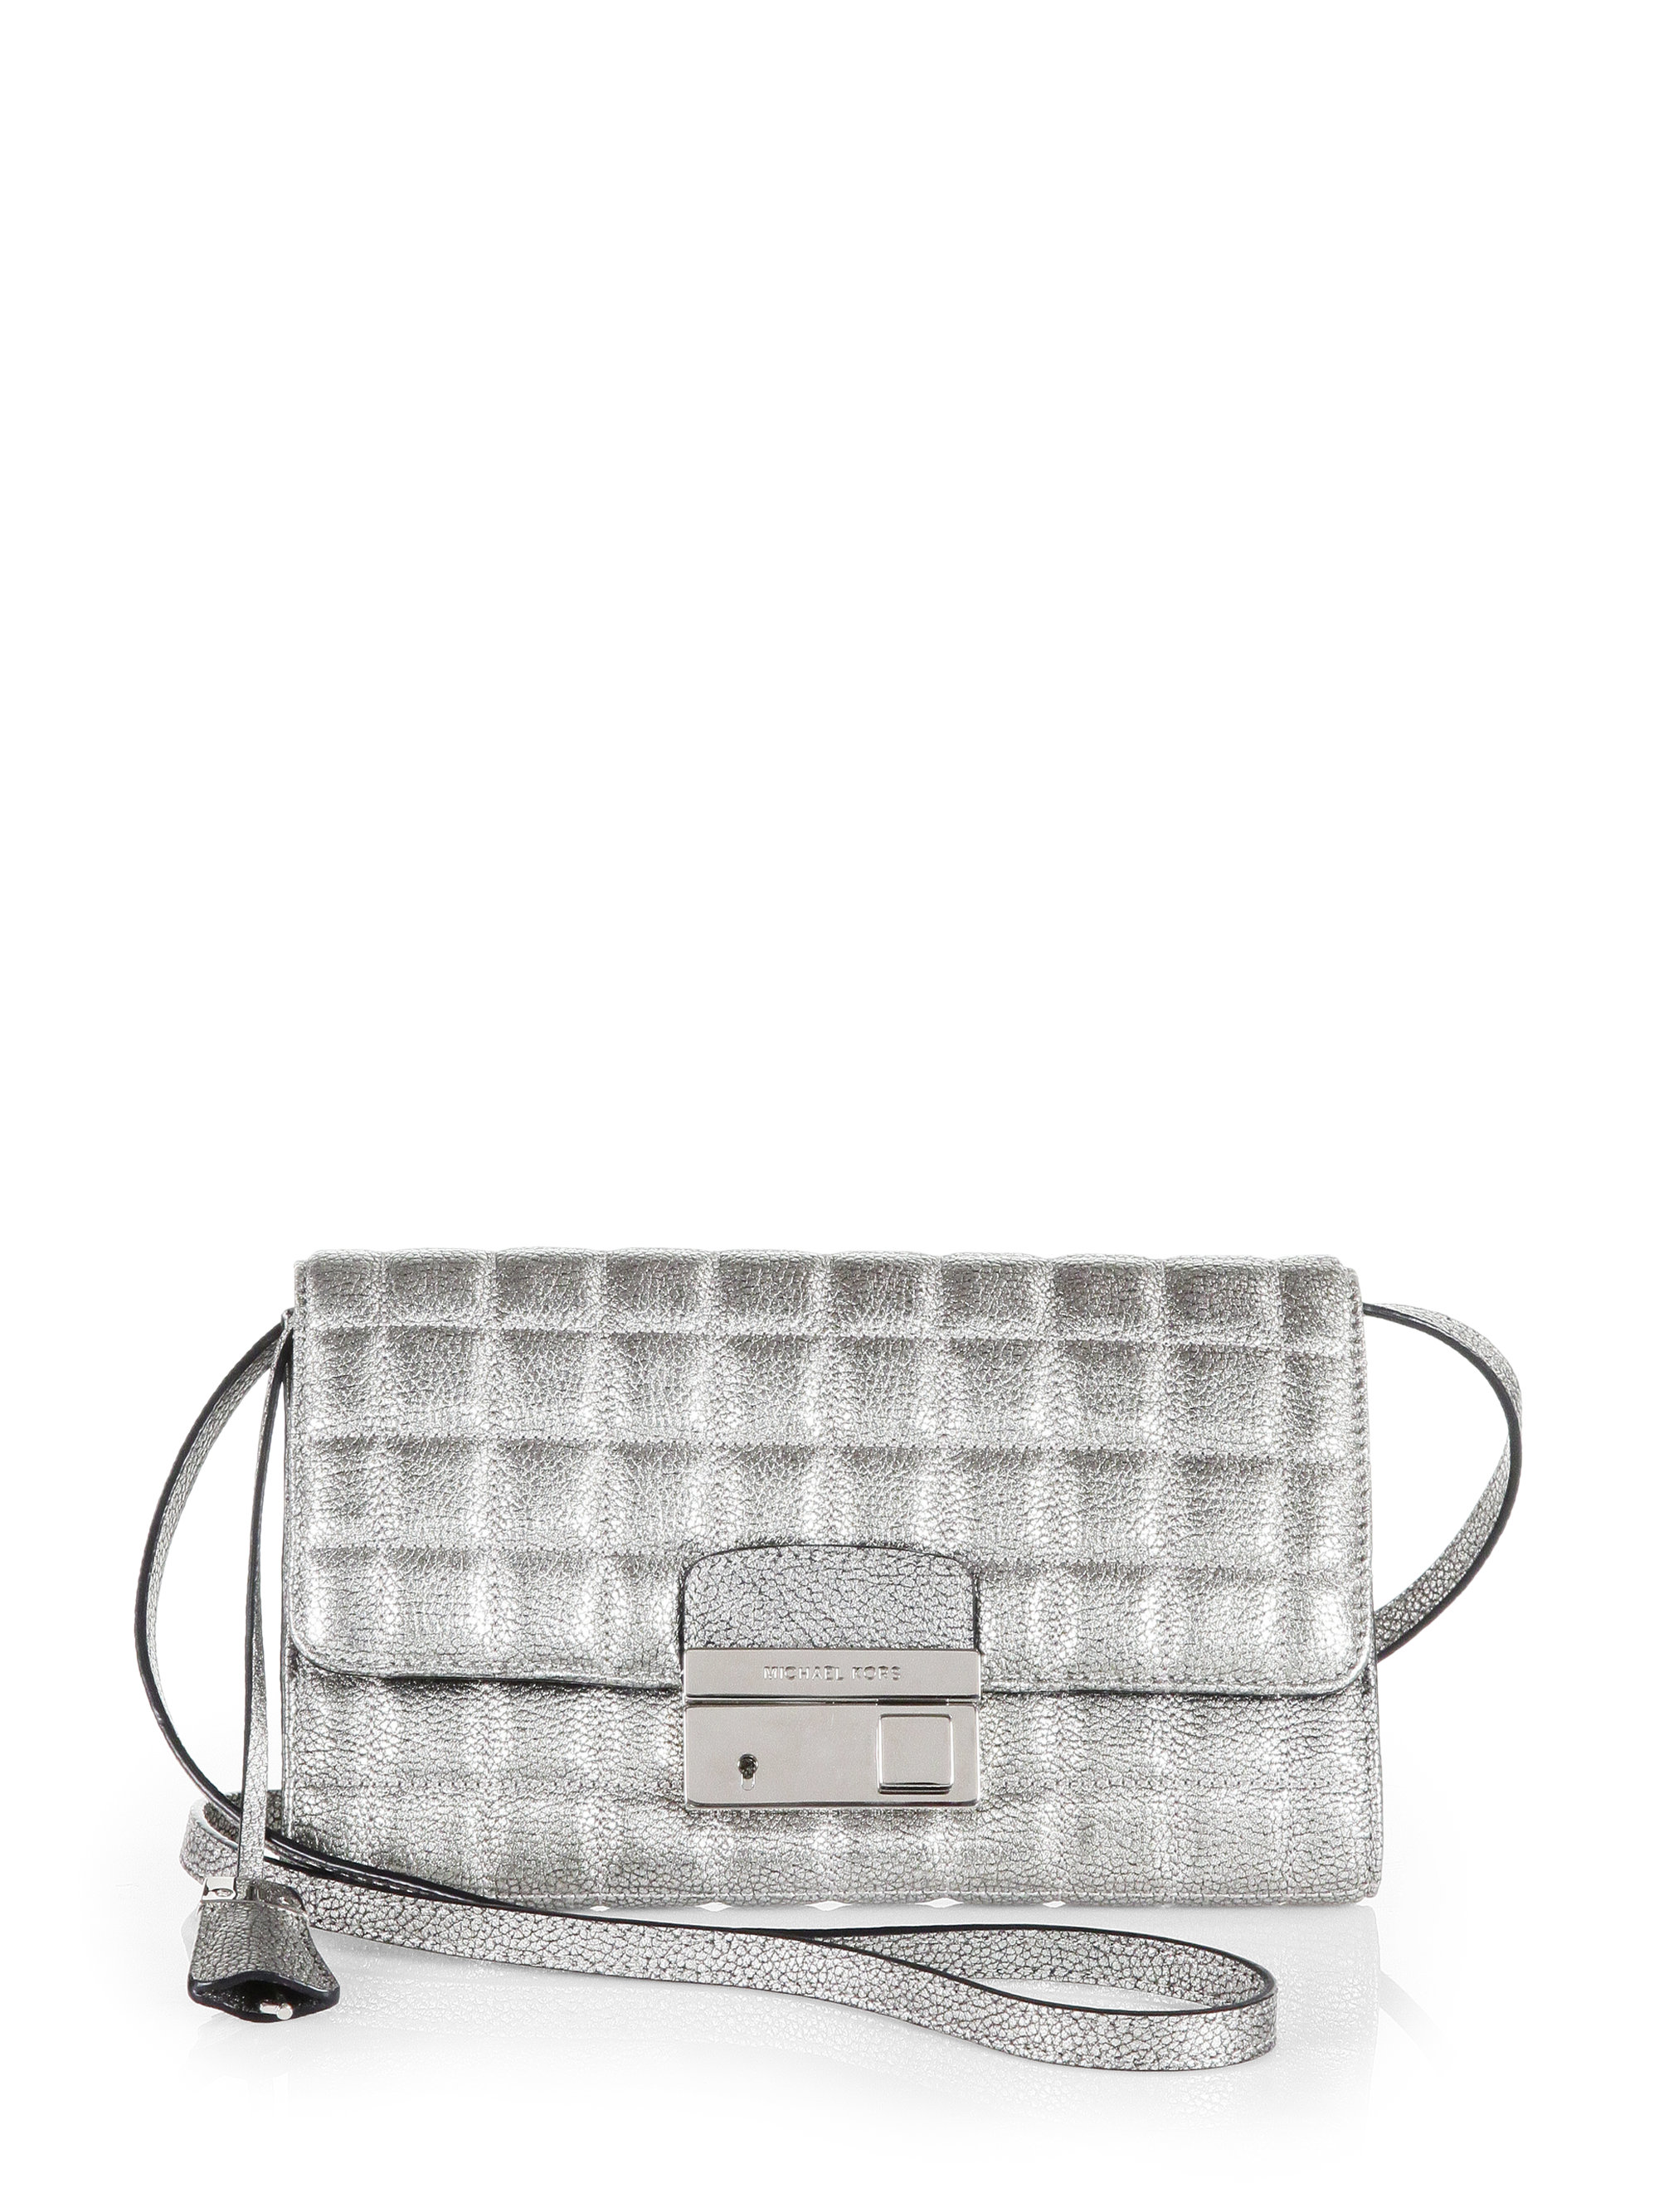 michael kors gia quilted leather clutch in silver lyst. Black Bedroom Furniture Sets. Home Design Ideas